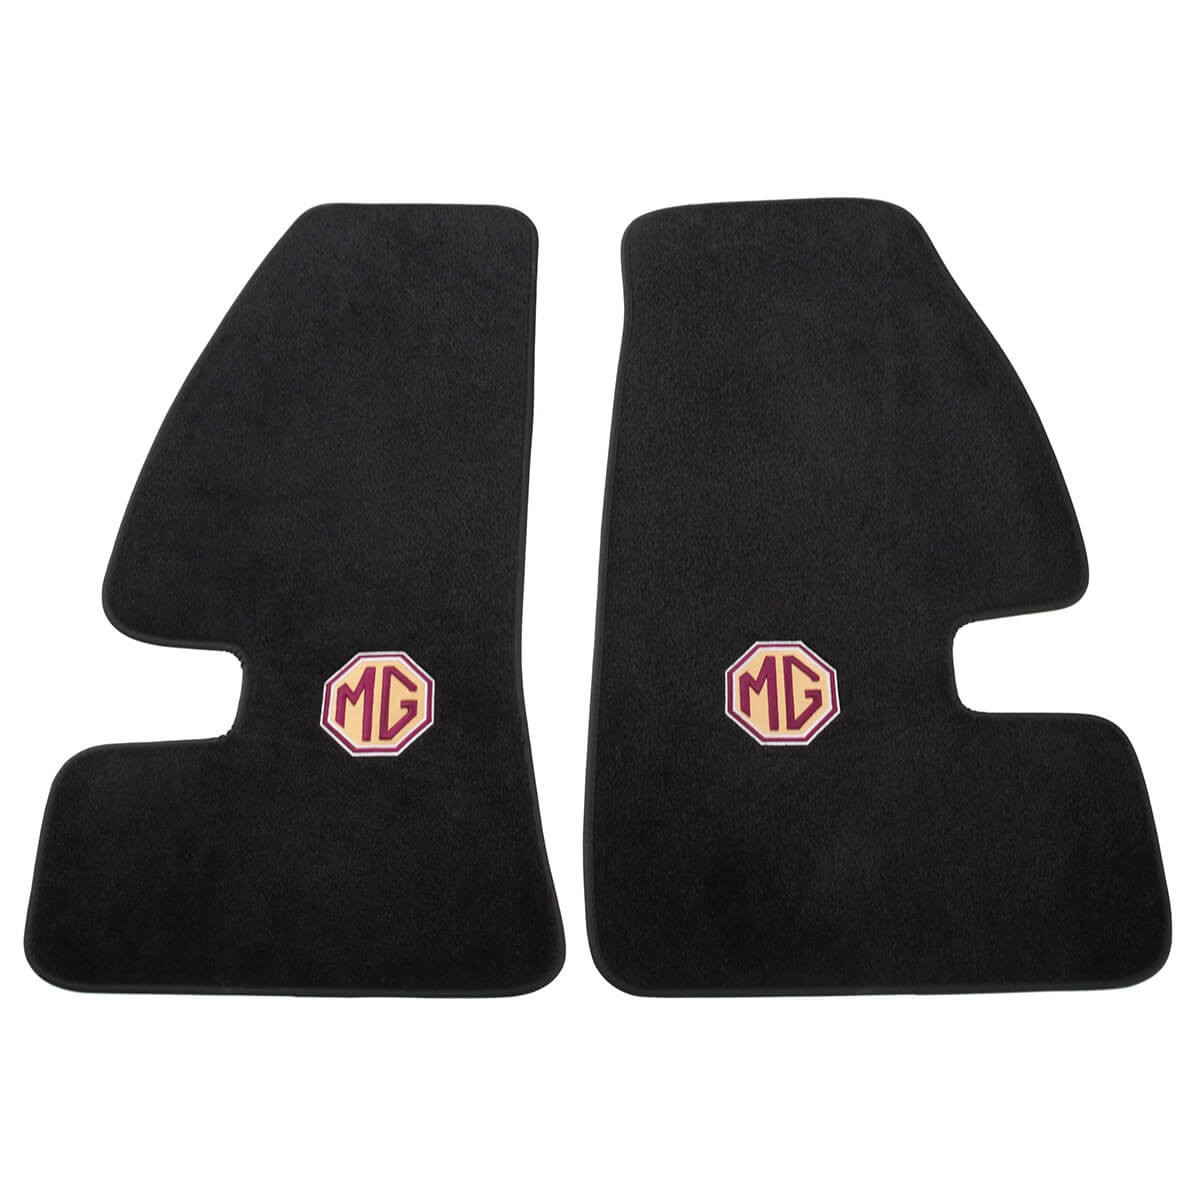 240 711 Plush Embroidered Floor Mats Moss Motors